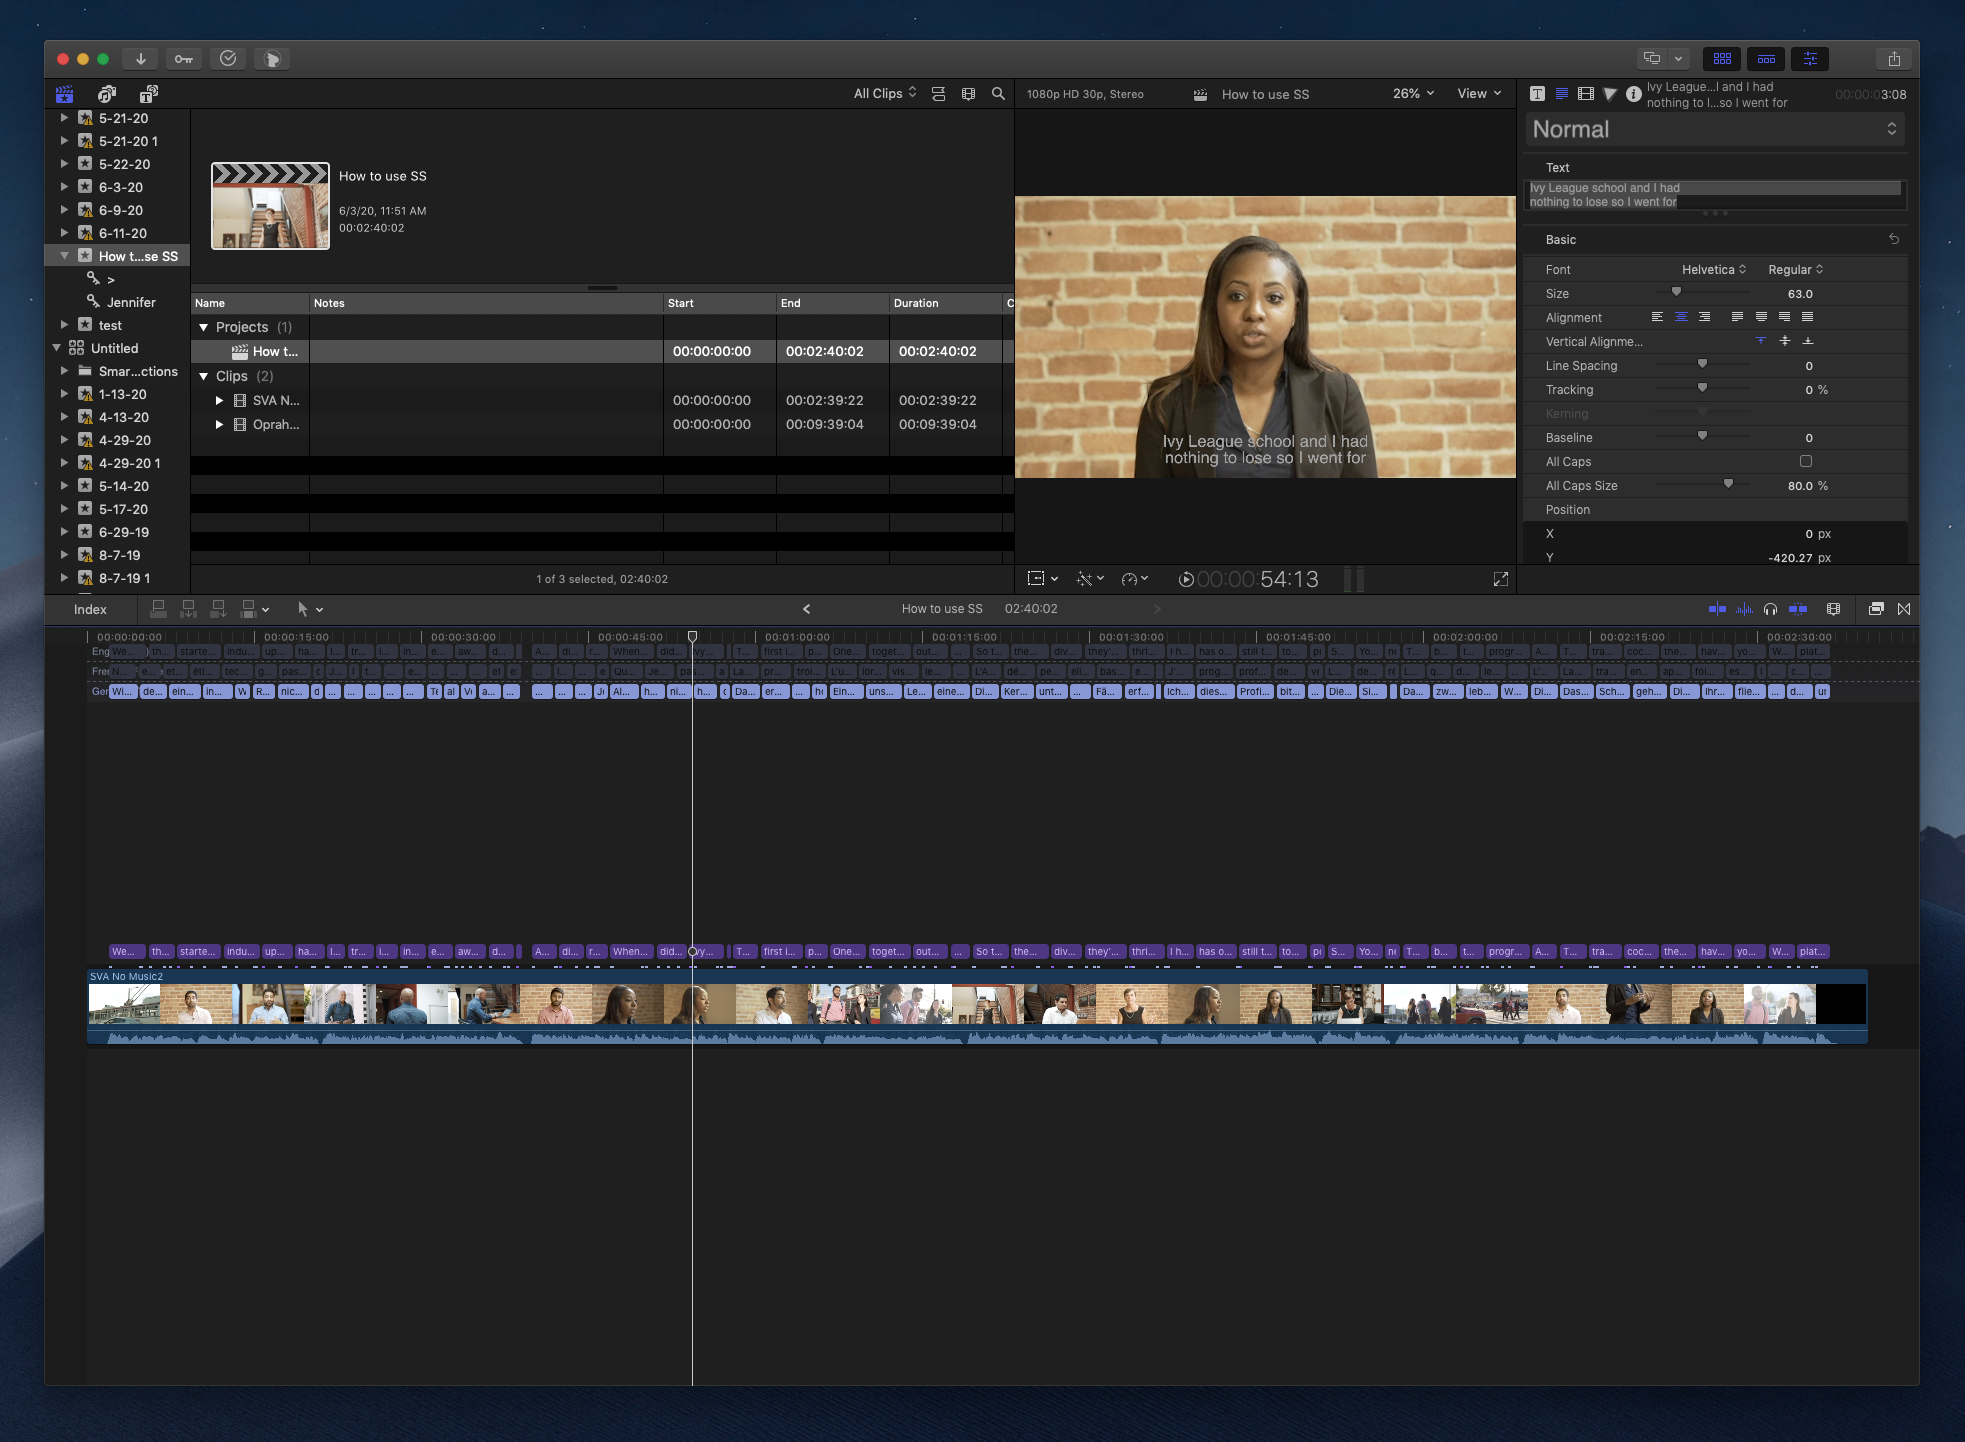 Your FCPX project now has subtitles, captions, and titles